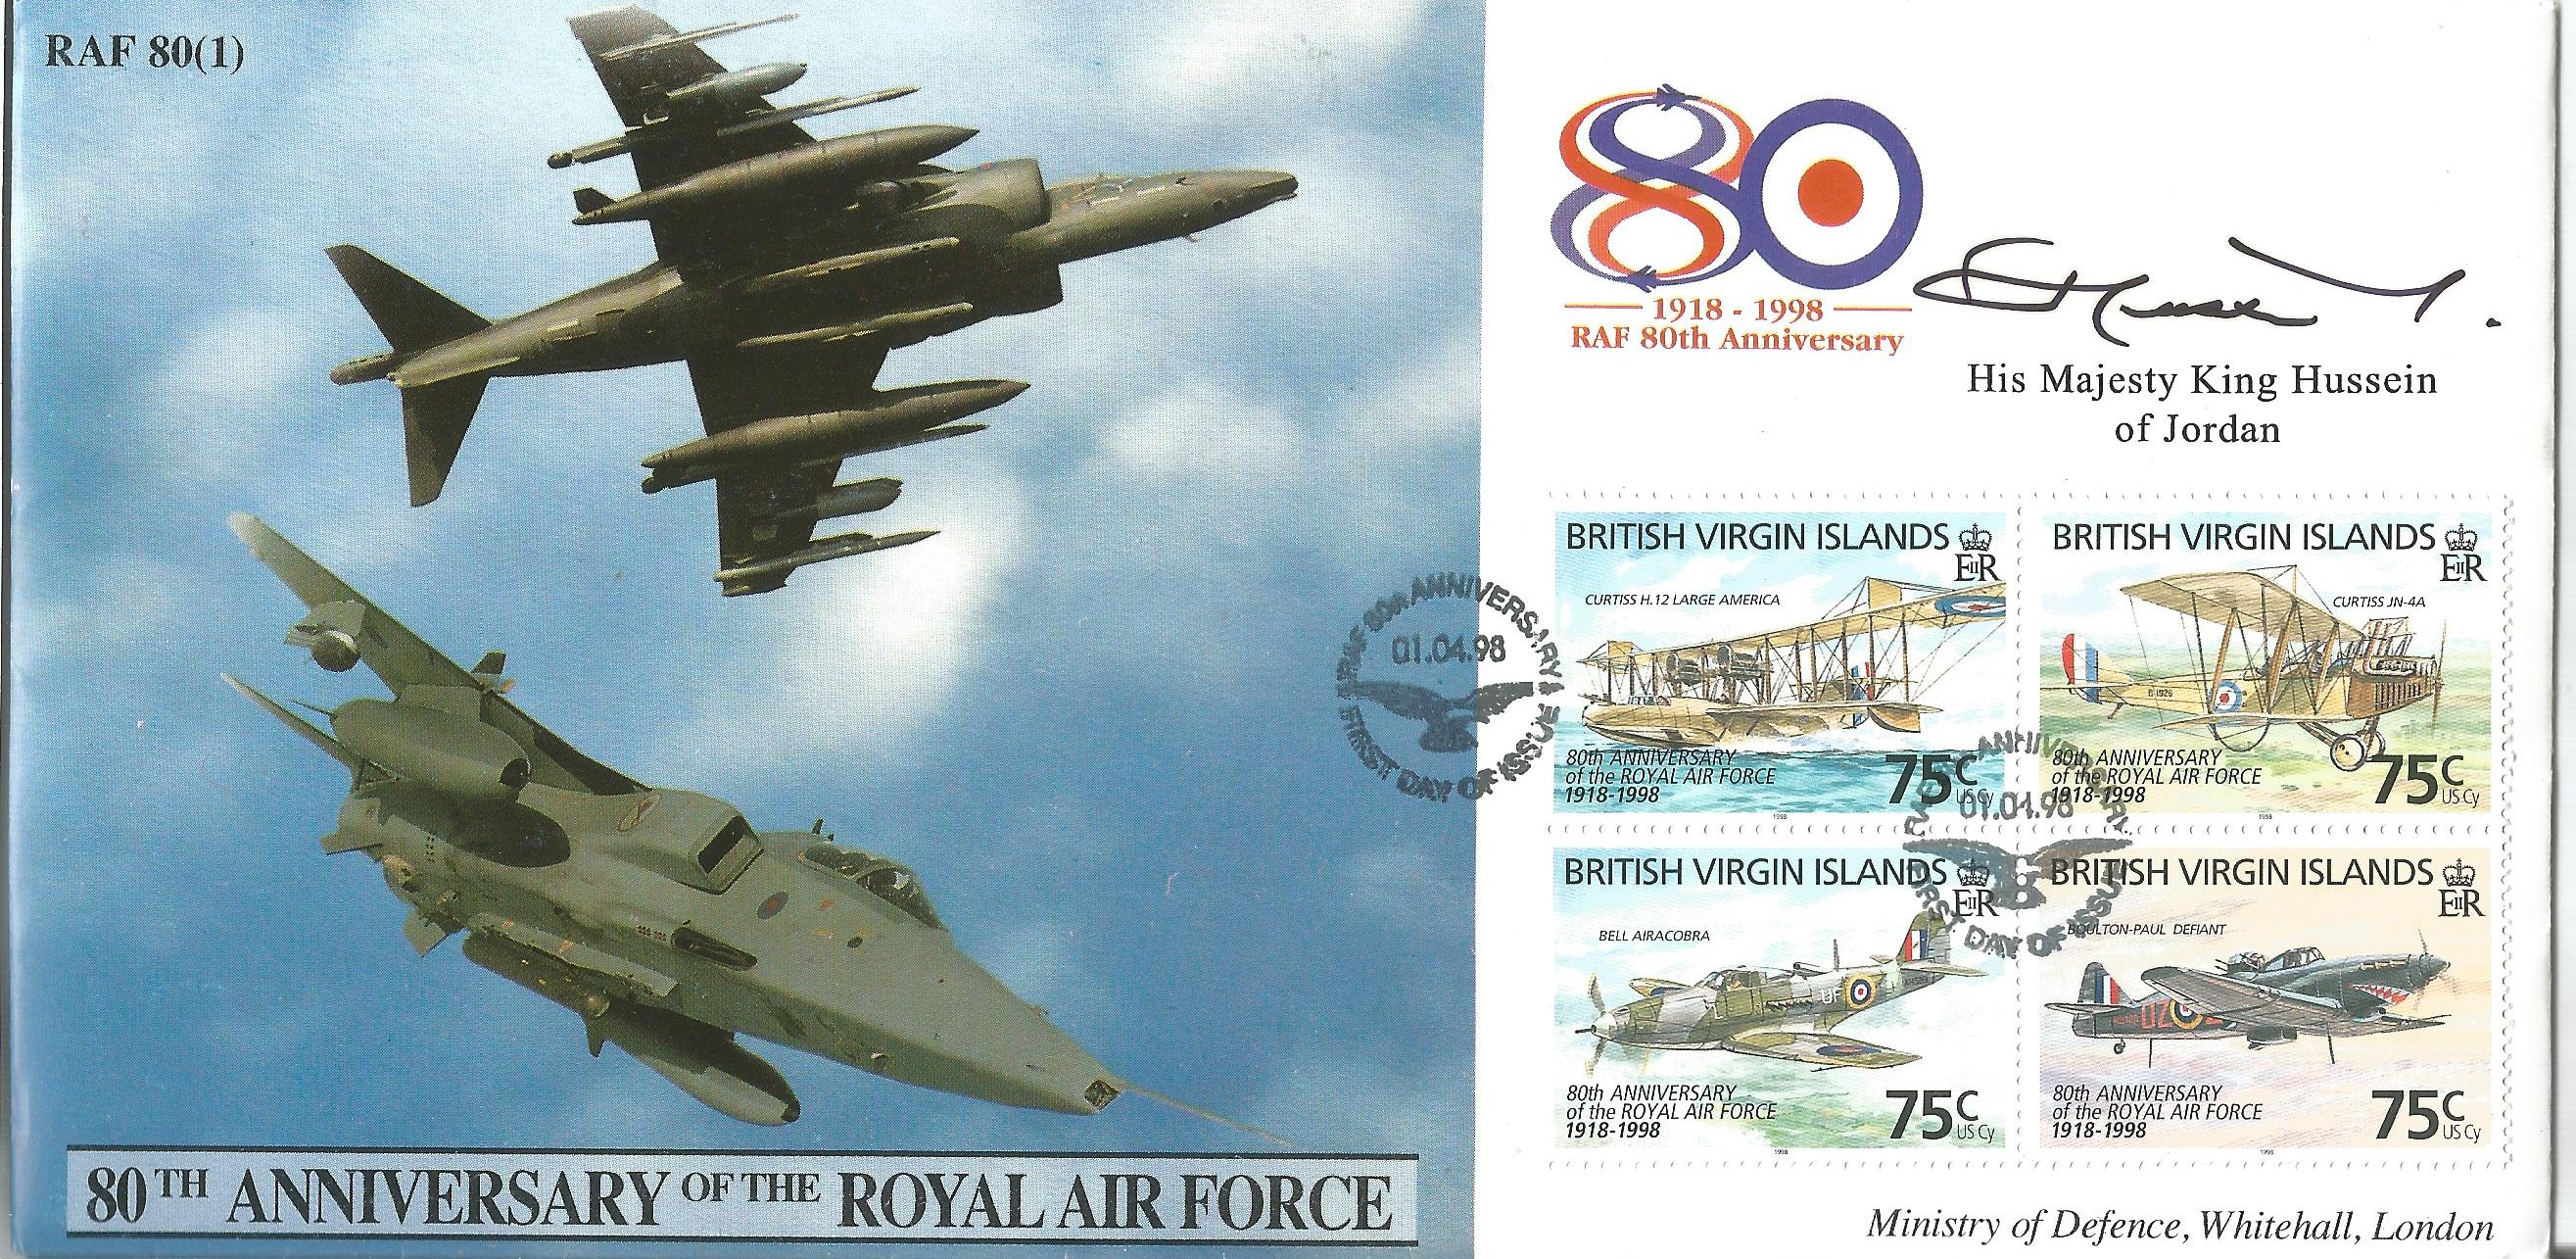 Lot 34 - King Hussein of Jordan RAF 80TH Anniversary flown FDC signed by His Majesty King Hussein of